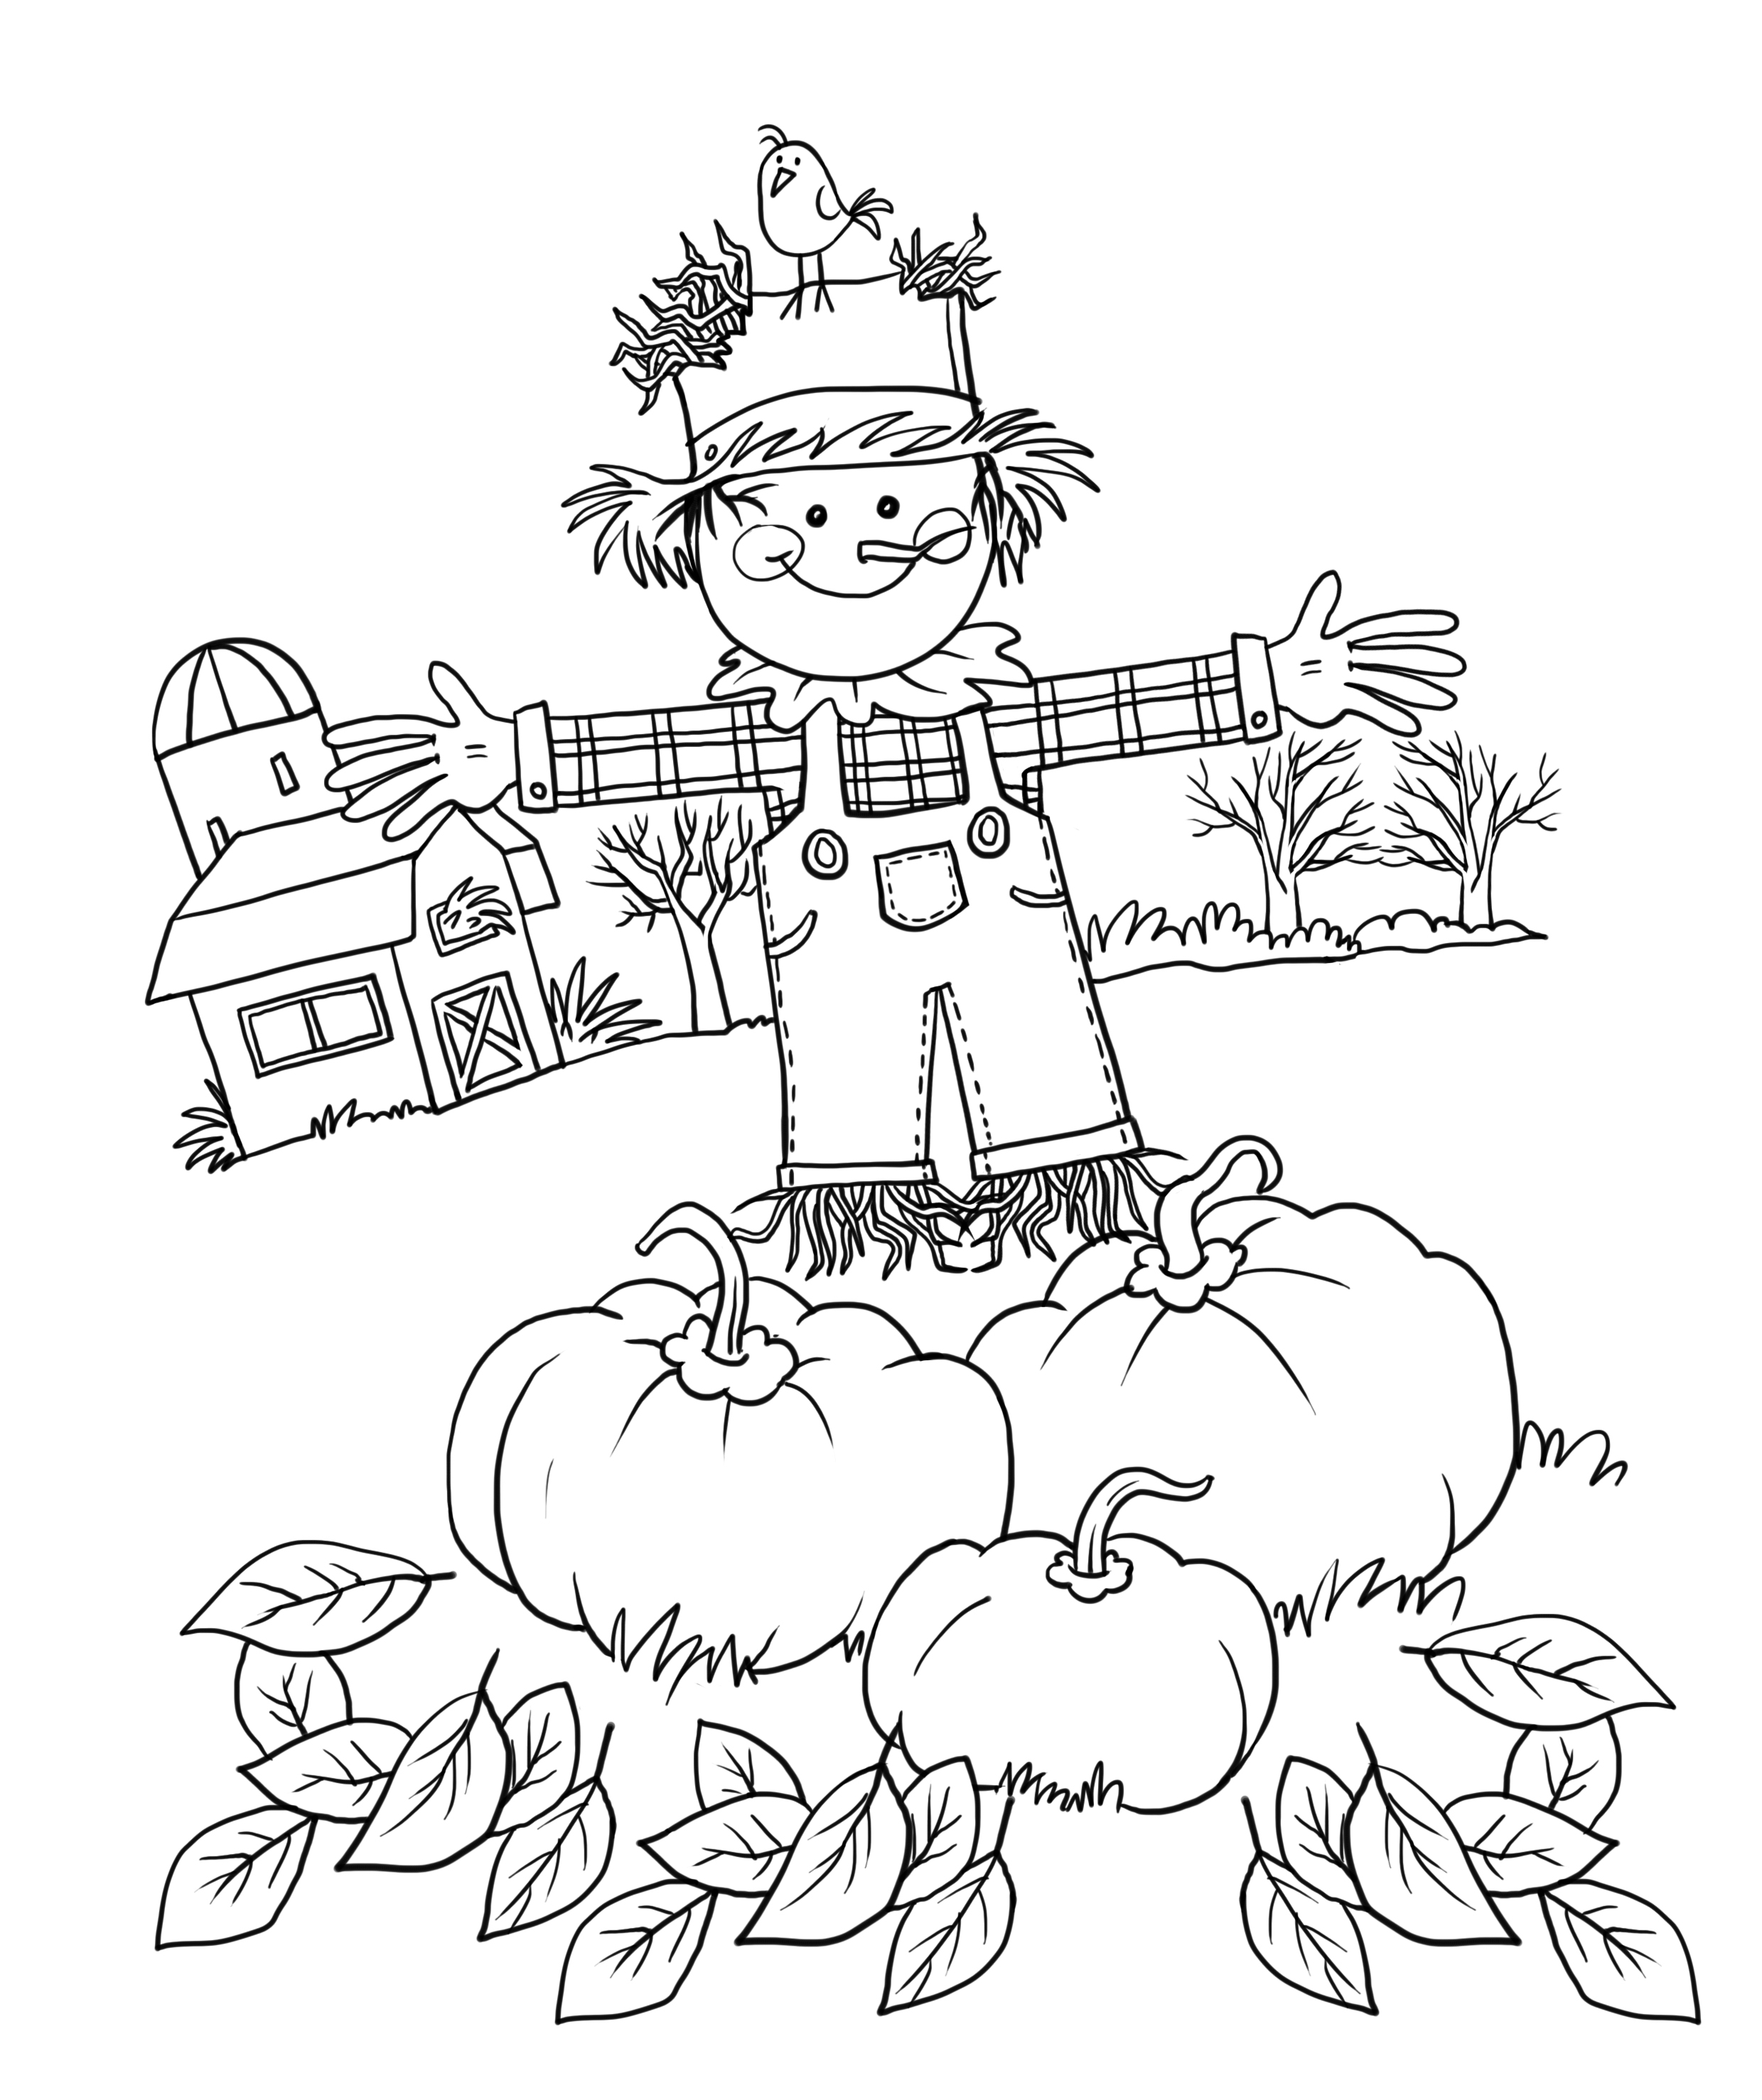 coloring pages fall themed - photo#38